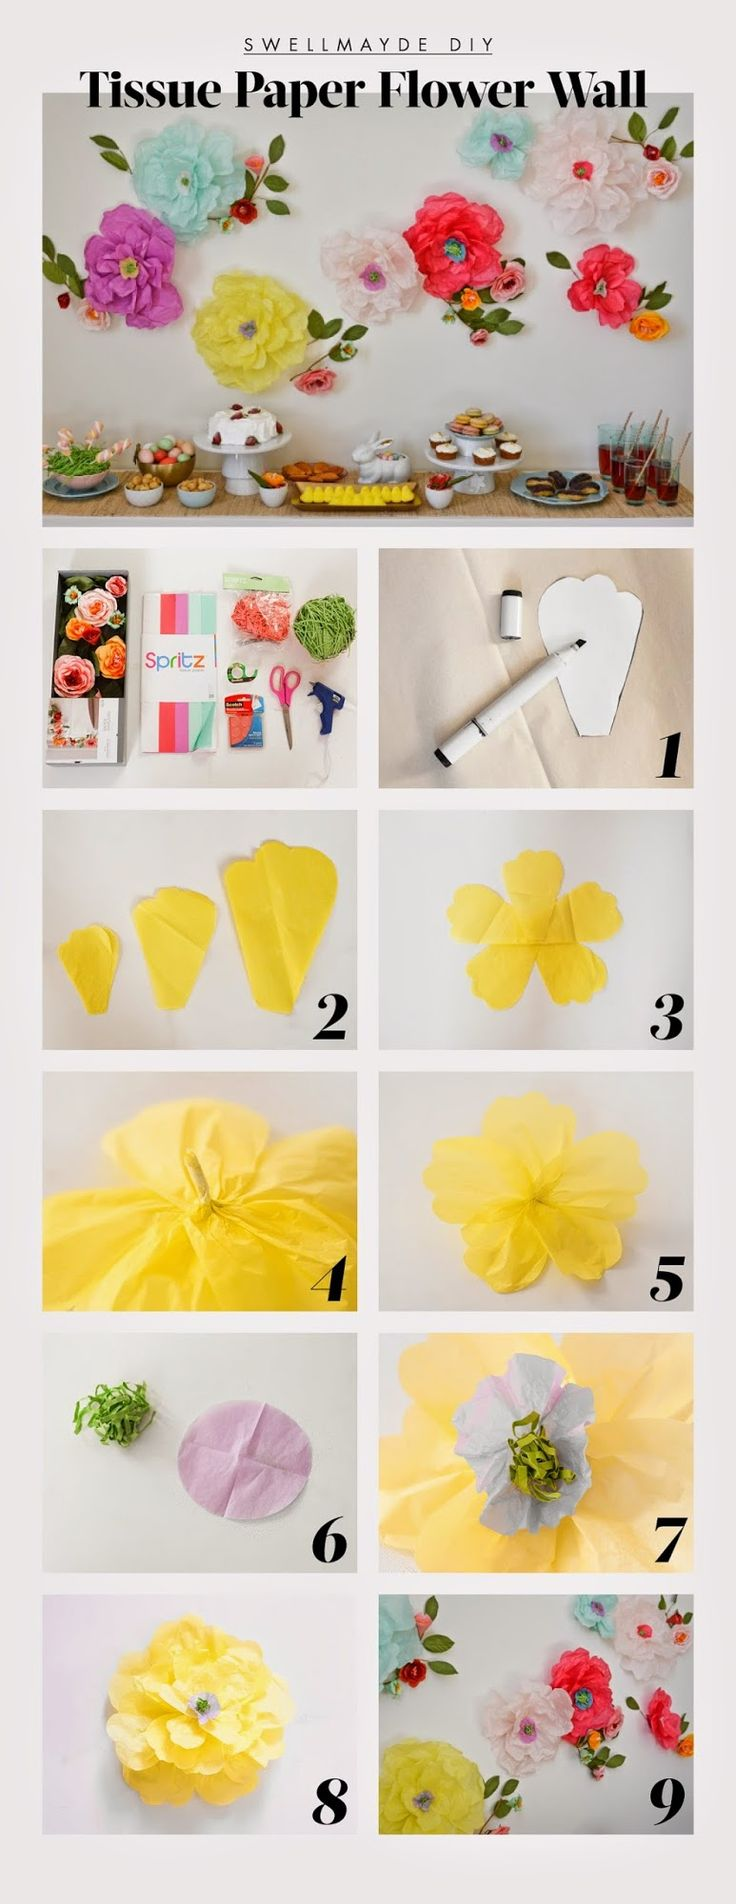 469 best DIY crafts images on Pinterest | Creative ideas, Ornaments ...